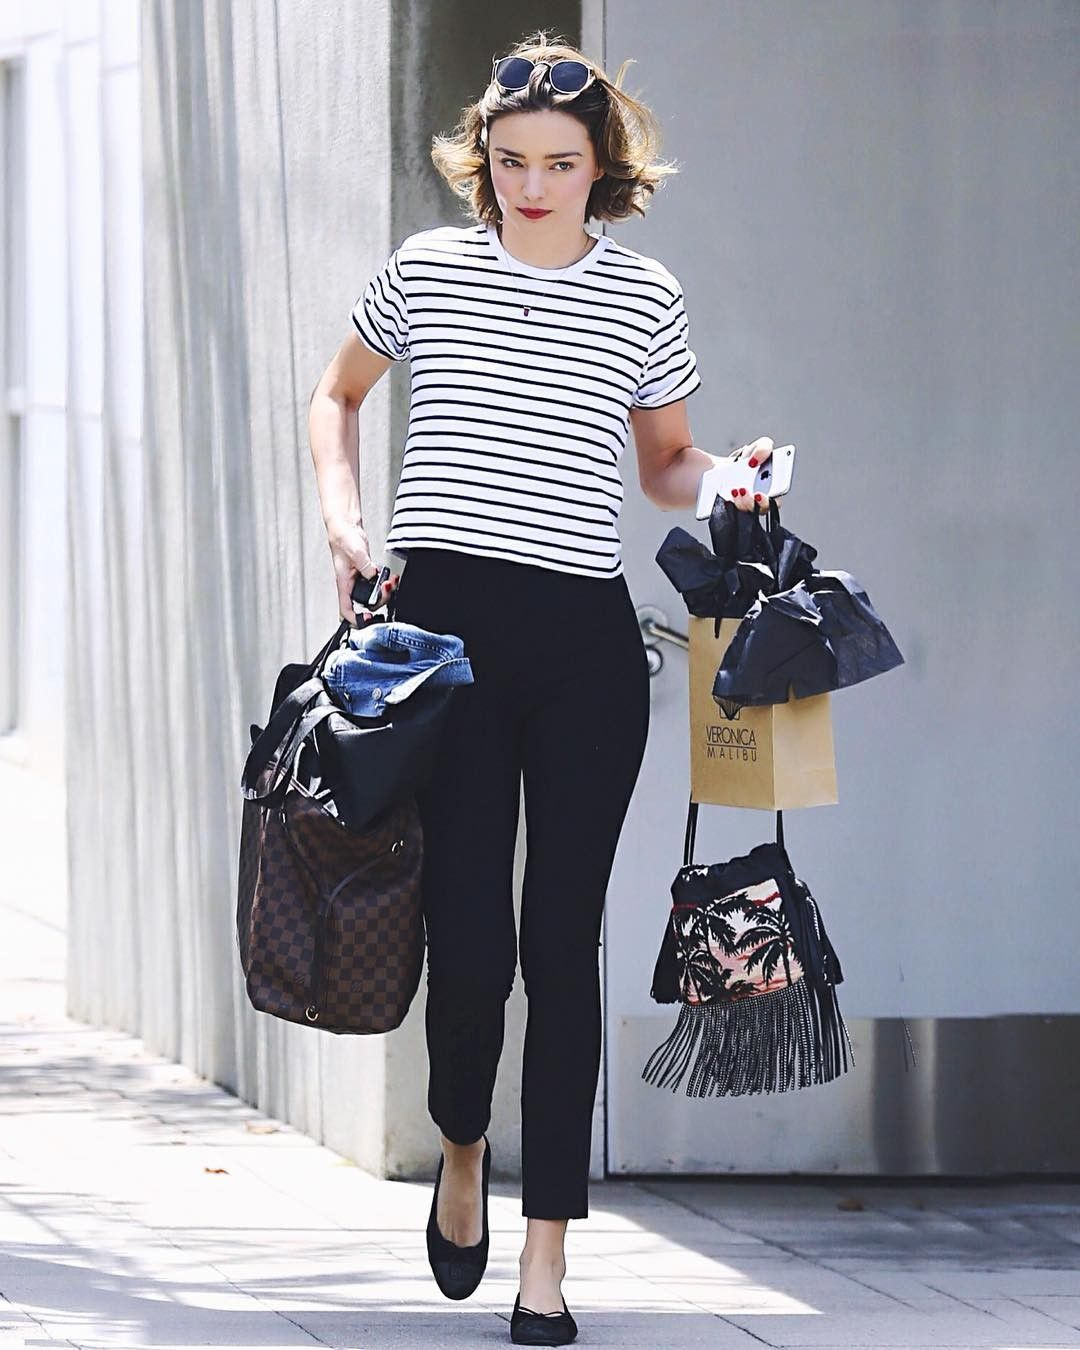 171a7437efe Miranda Kerr Just Wore the Most Audrey Hepburn Outfit via  WhoWhatWear